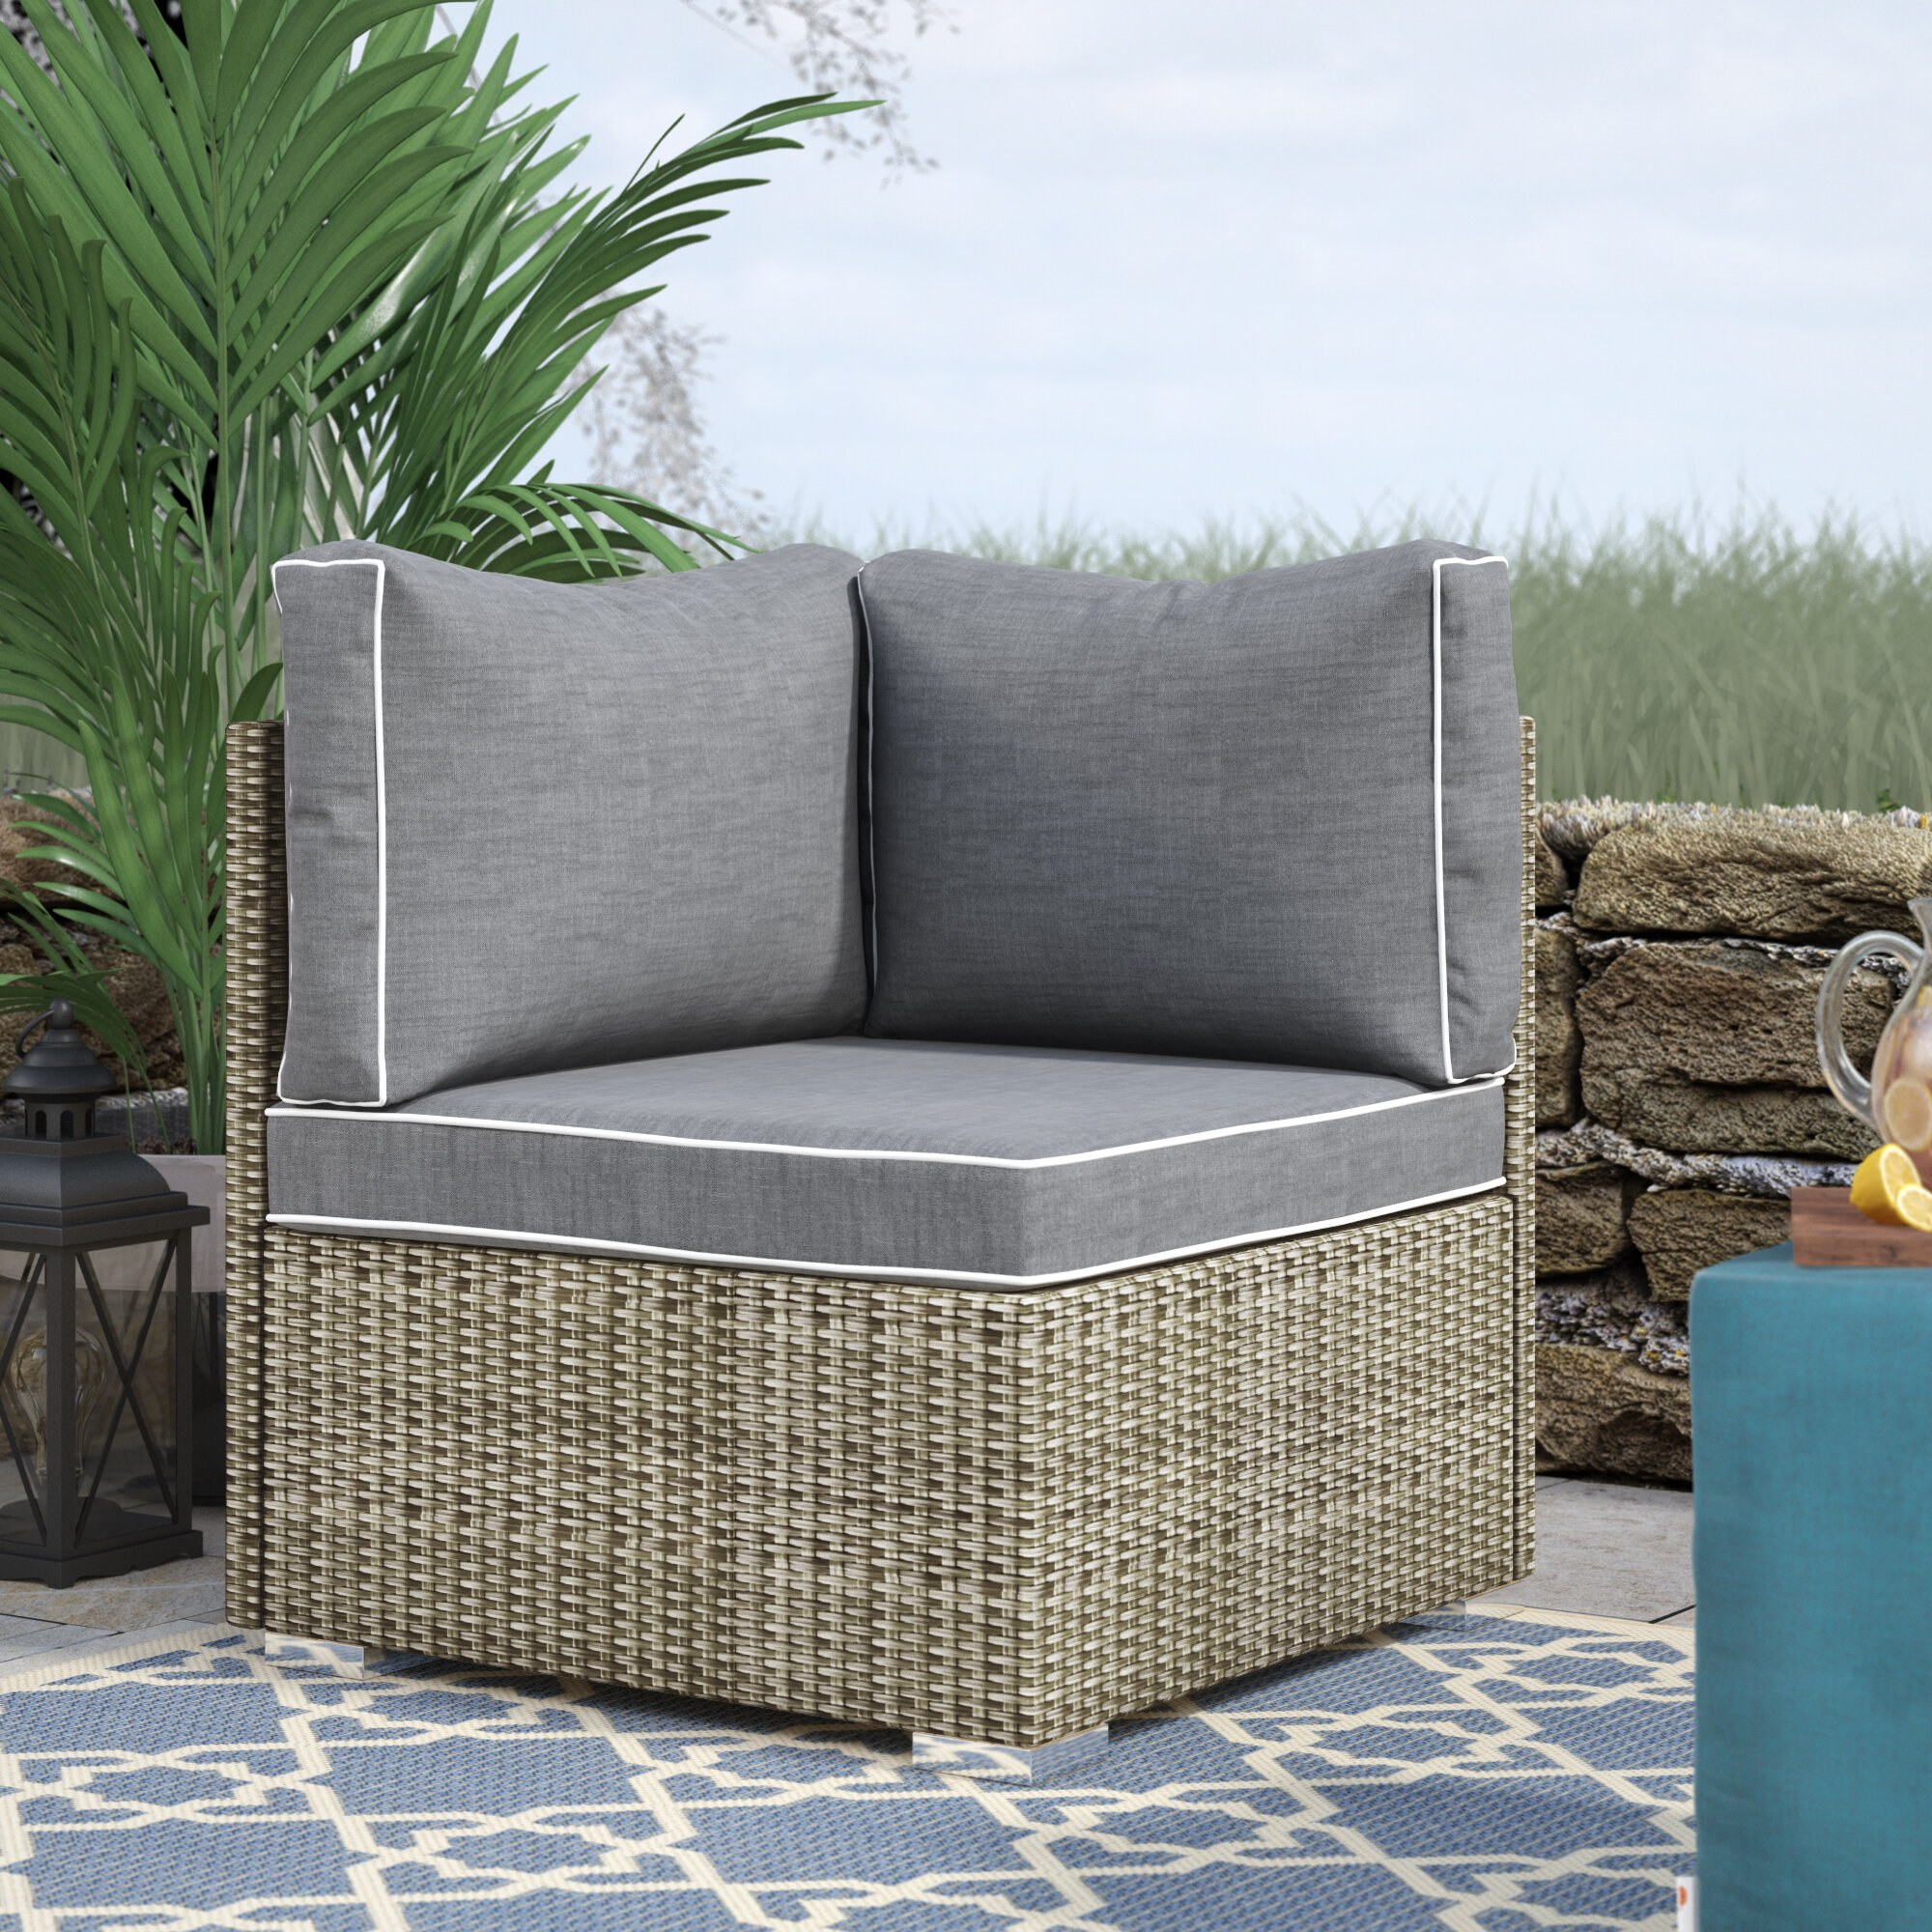 Highland Dunes Heinrich Outdoor Corner Patio Chair With Cushion Reviews Wayfair